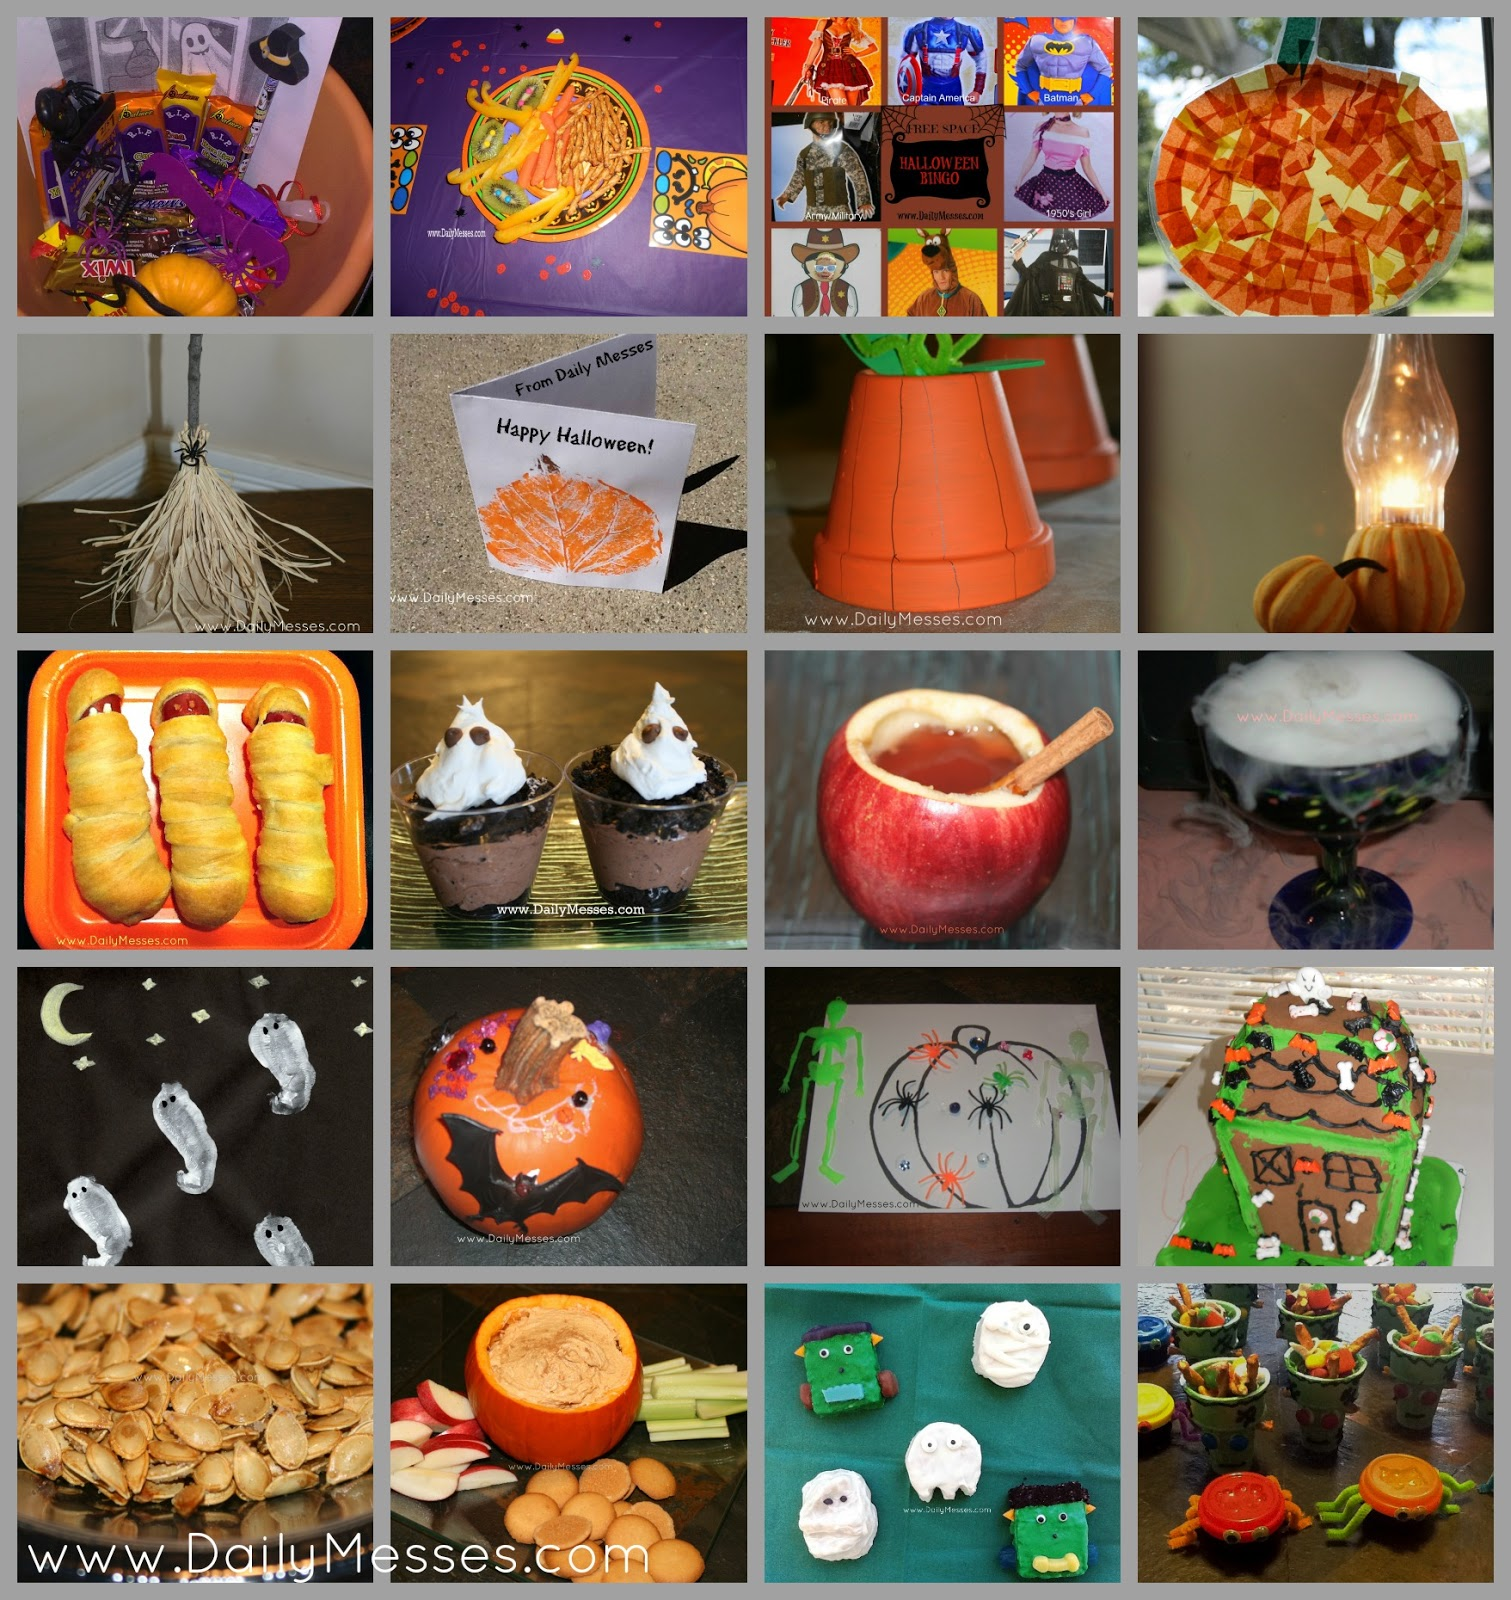 Halloween Ideas Crafts Food and Fun & Daily Messes: Halloween: Ideas Crafts Food and Fun